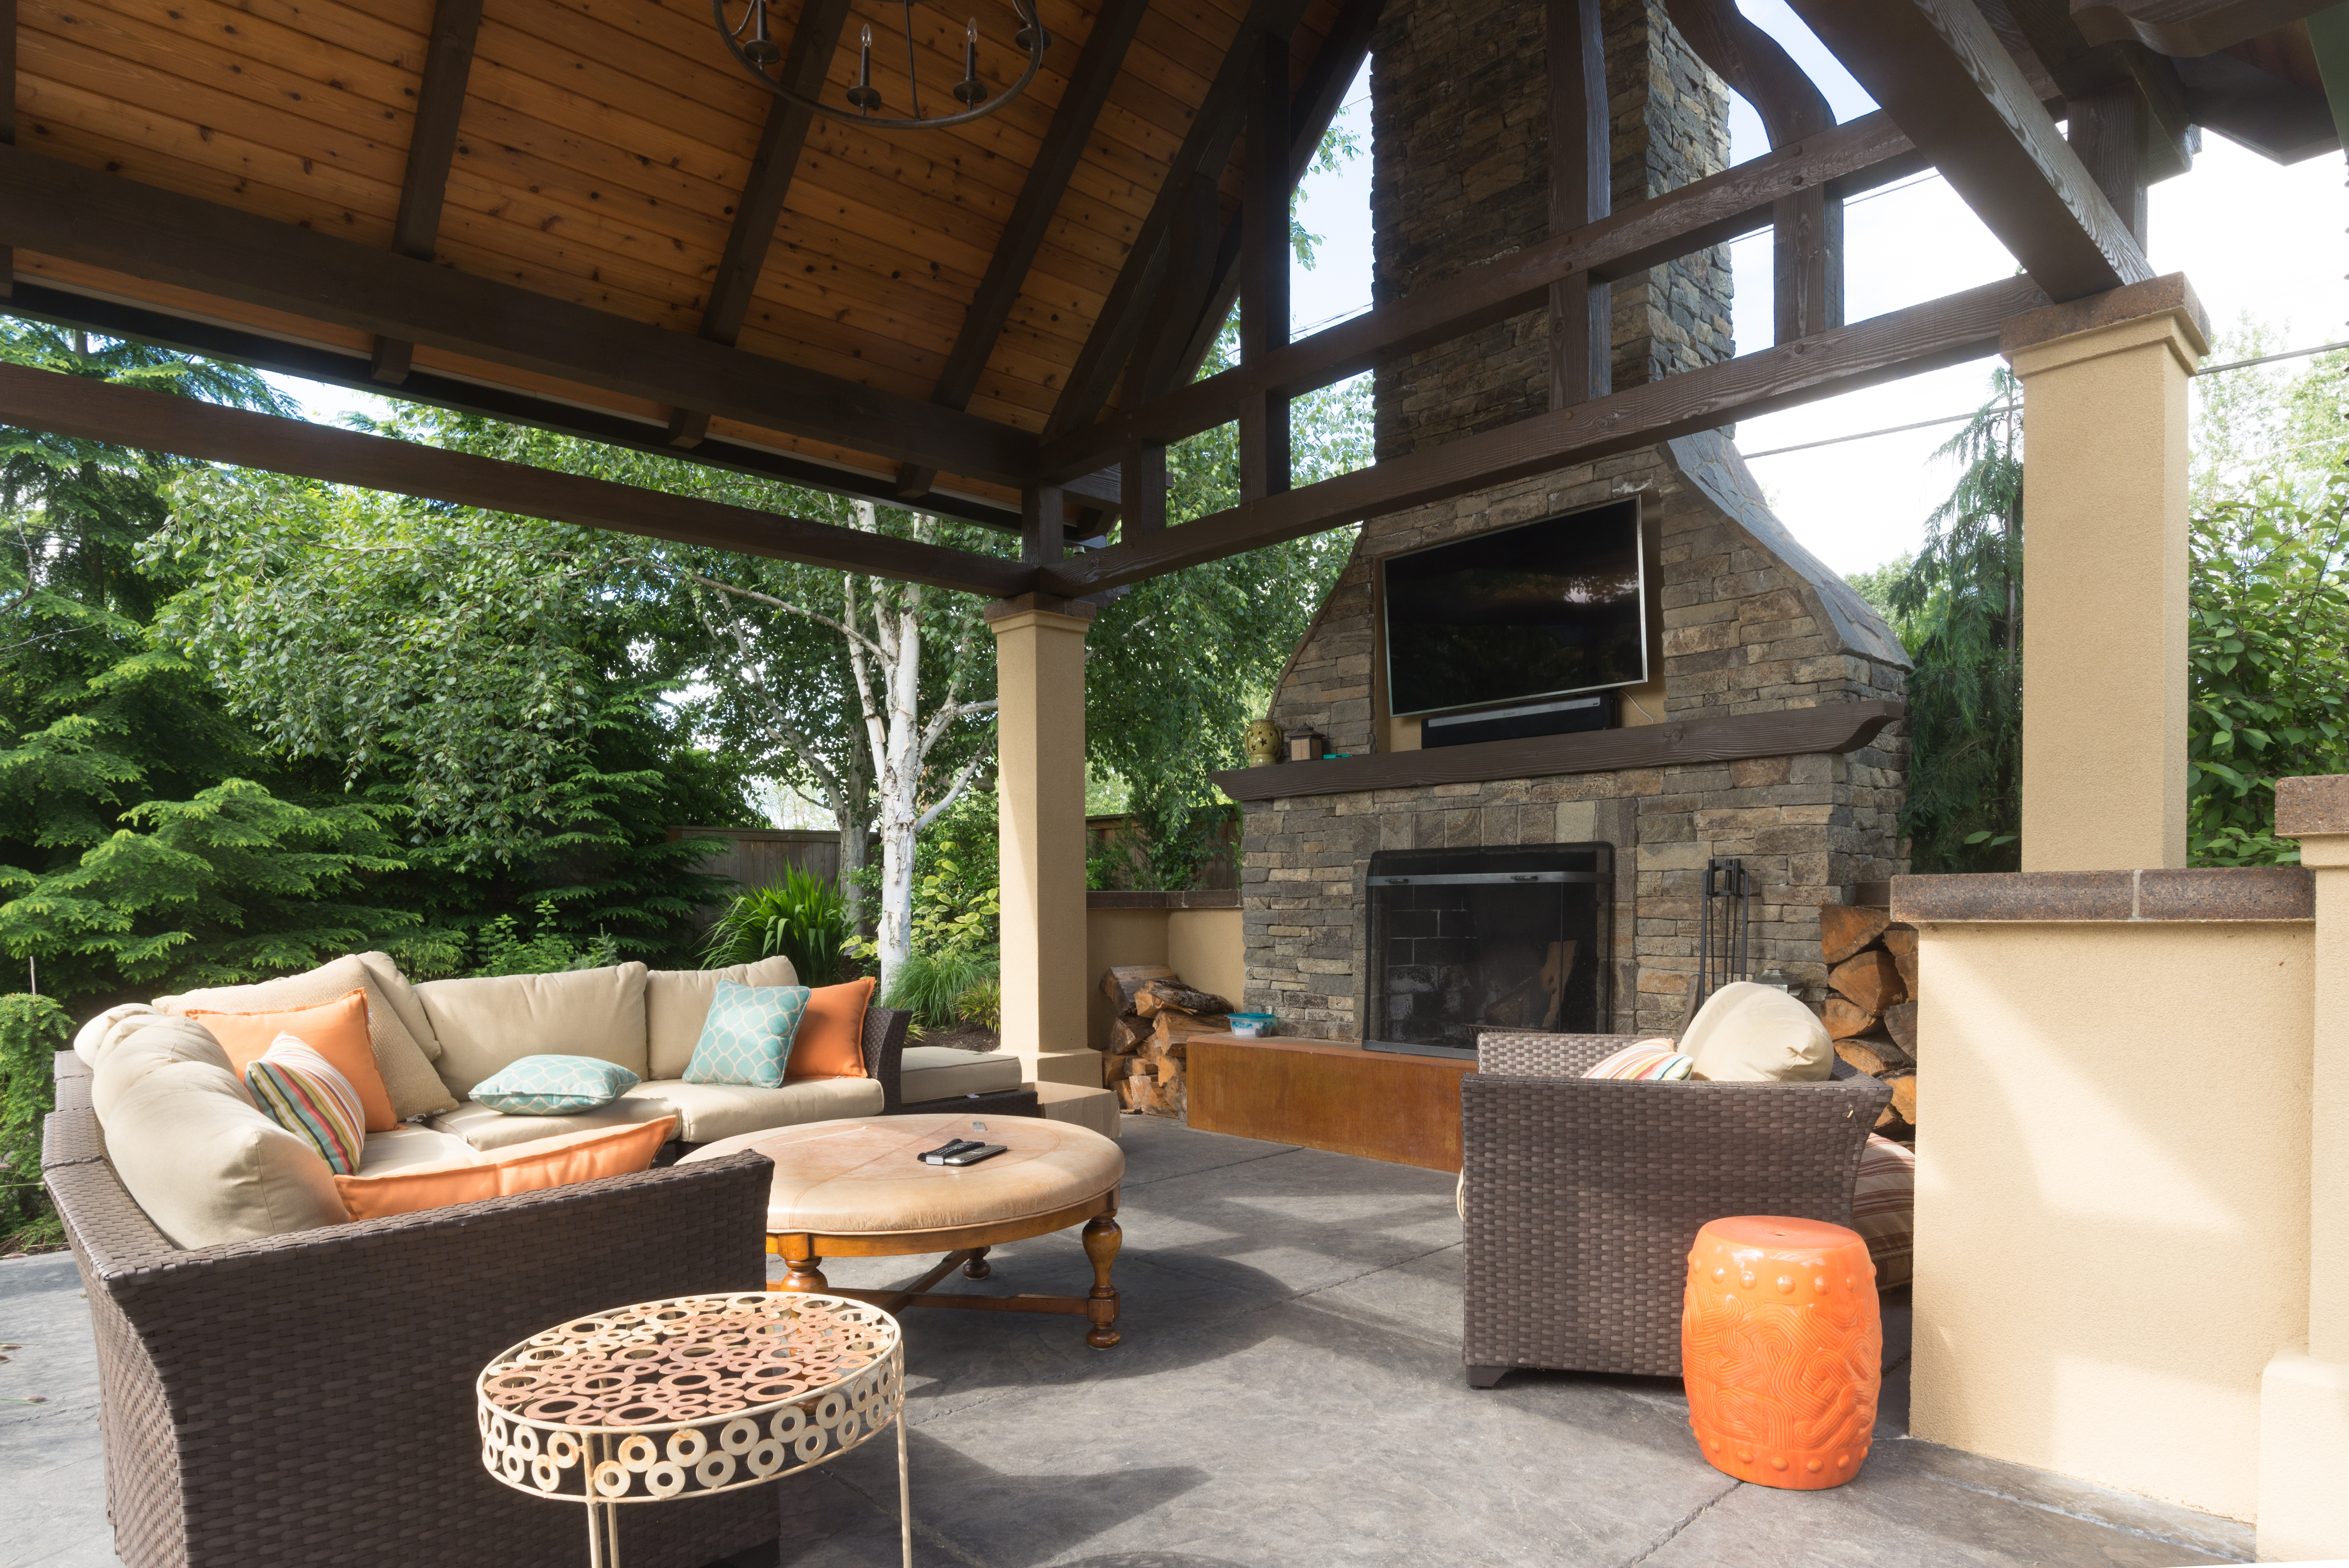 upscale outdoor terrace/room with comfortable furniture and big fireplace